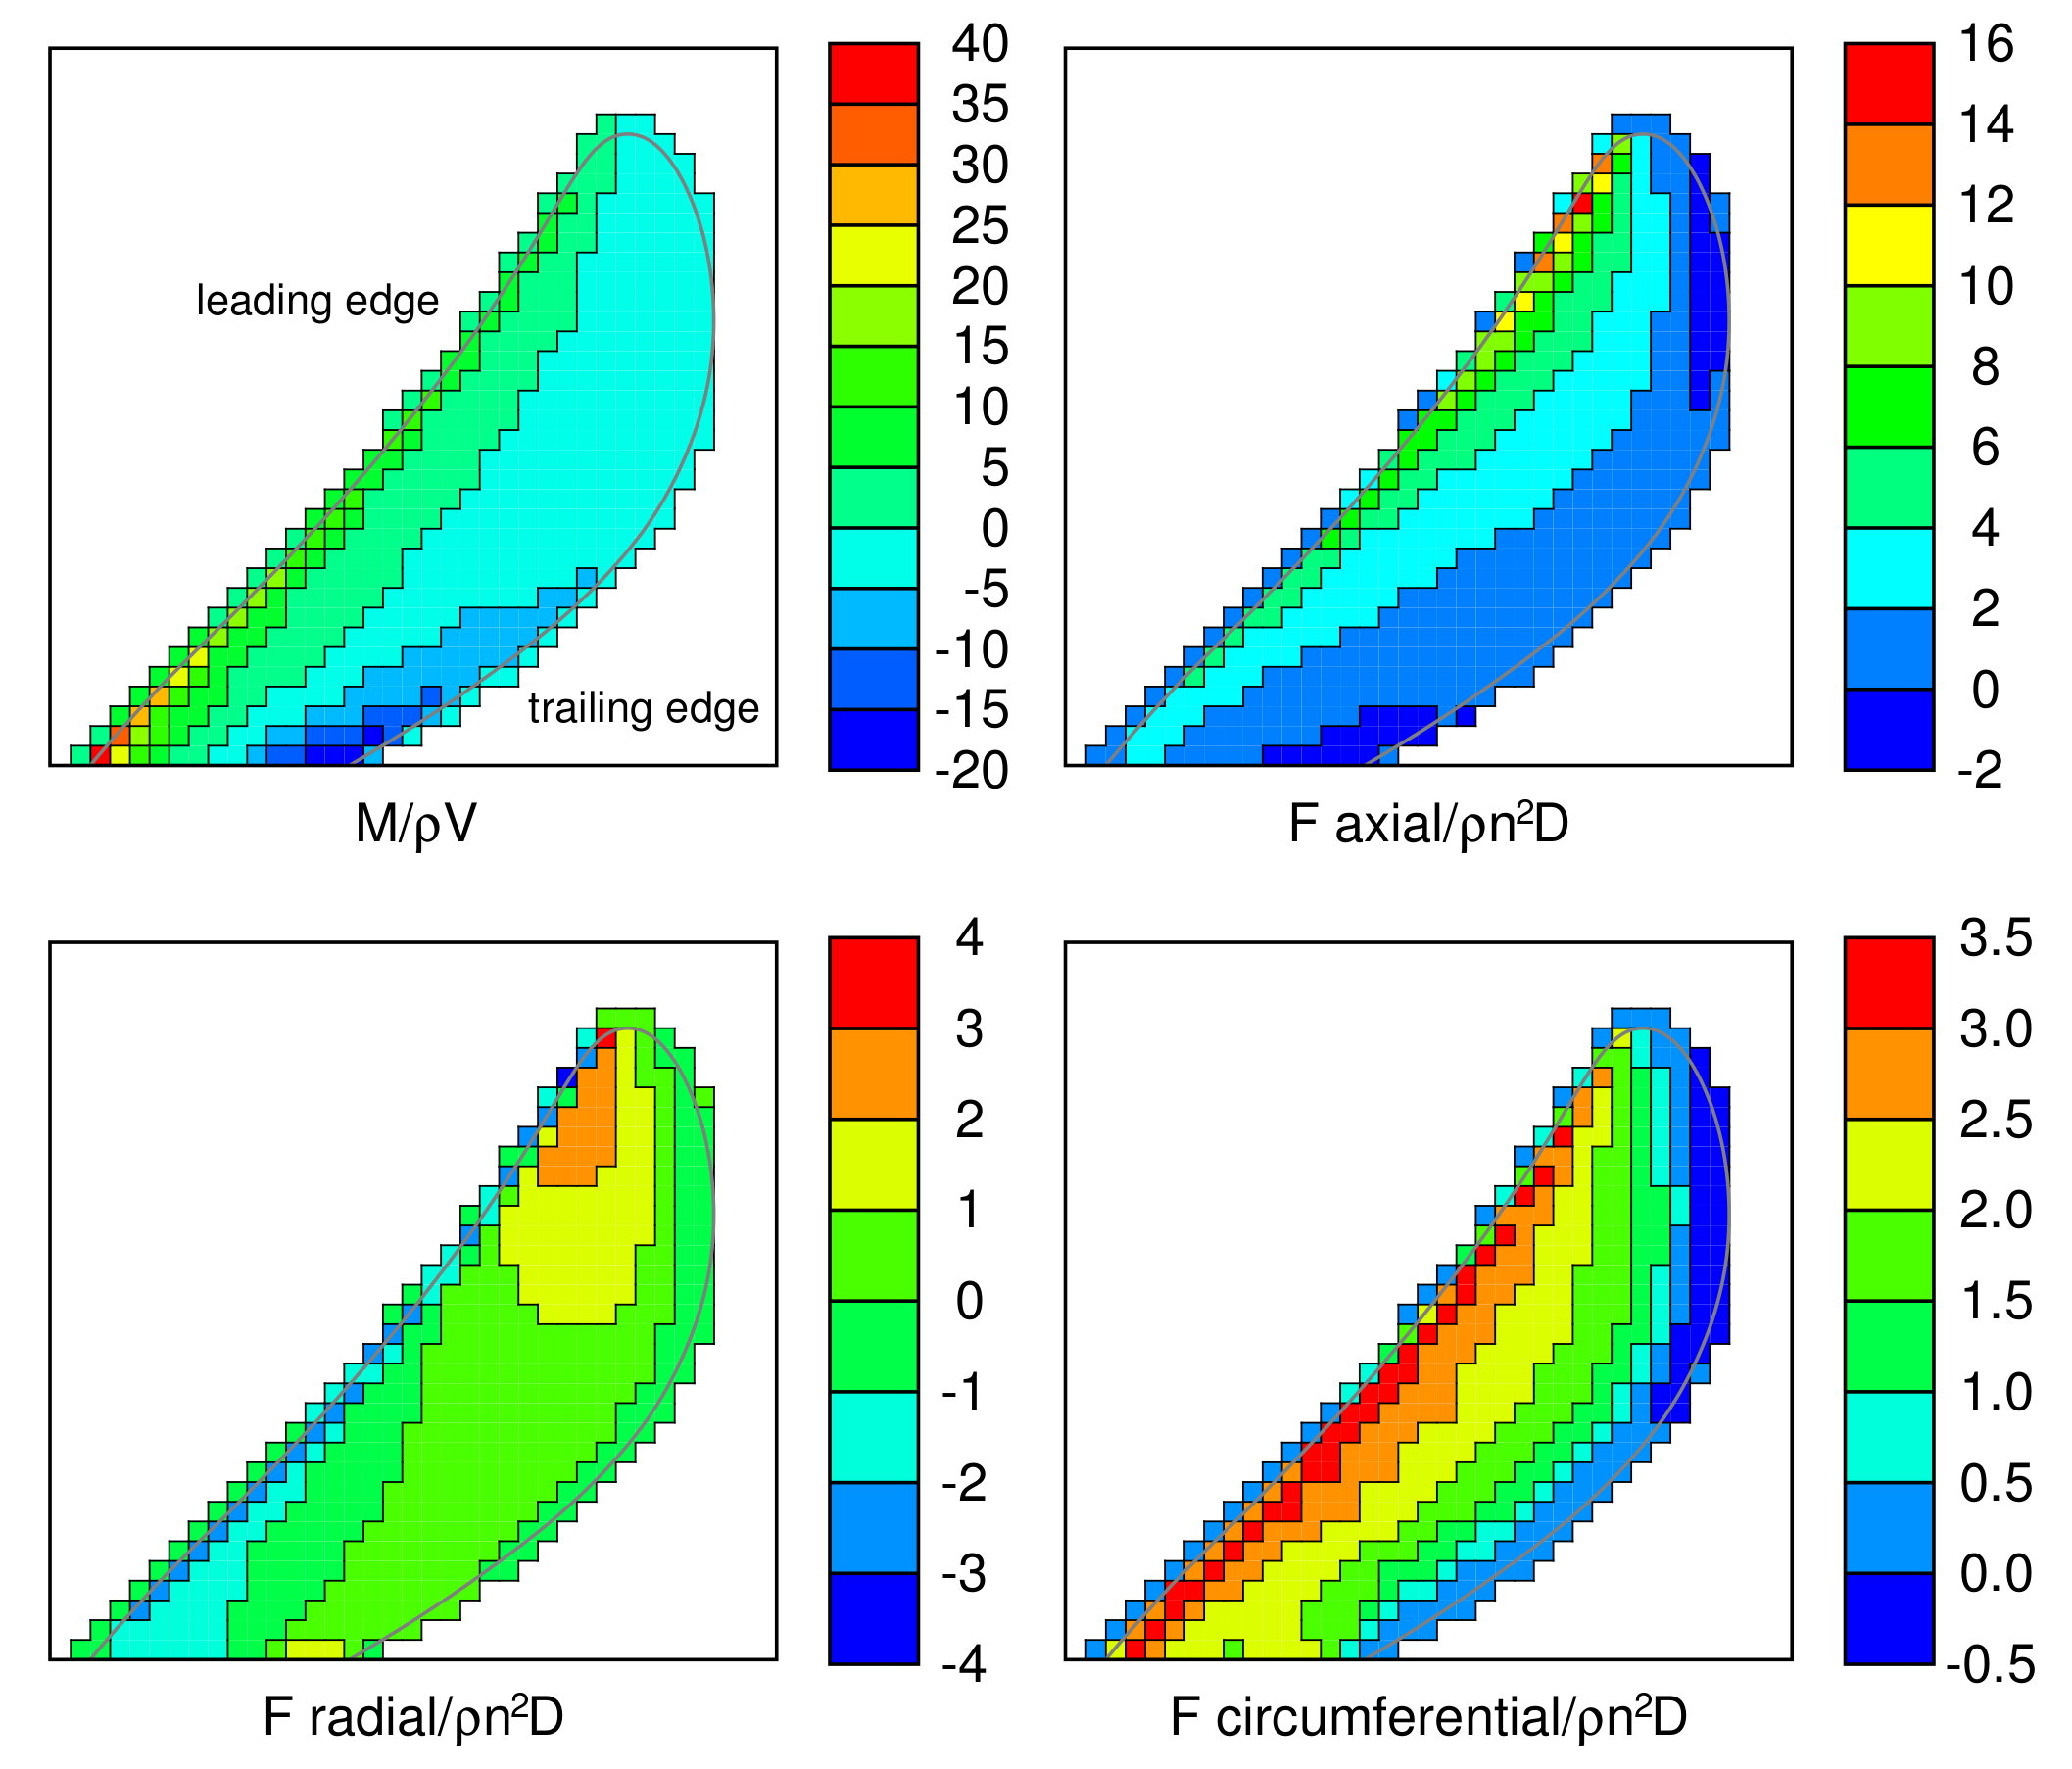 Force Vs Mass Flow Rate: Modelling A Propeller Using Force